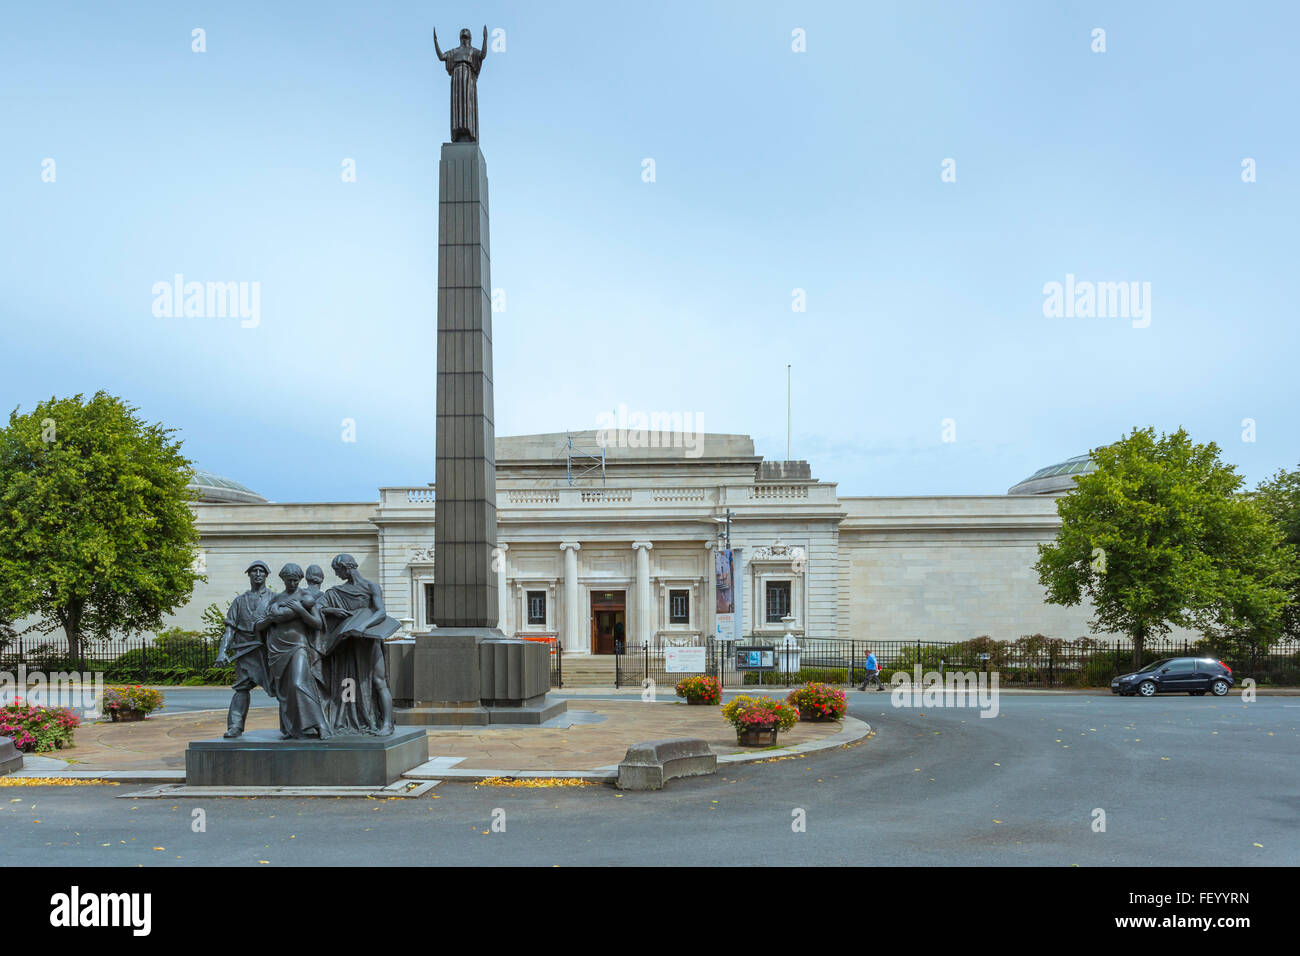 The Lady Lever Art Gallery at Port Sunlight. - Stock Image